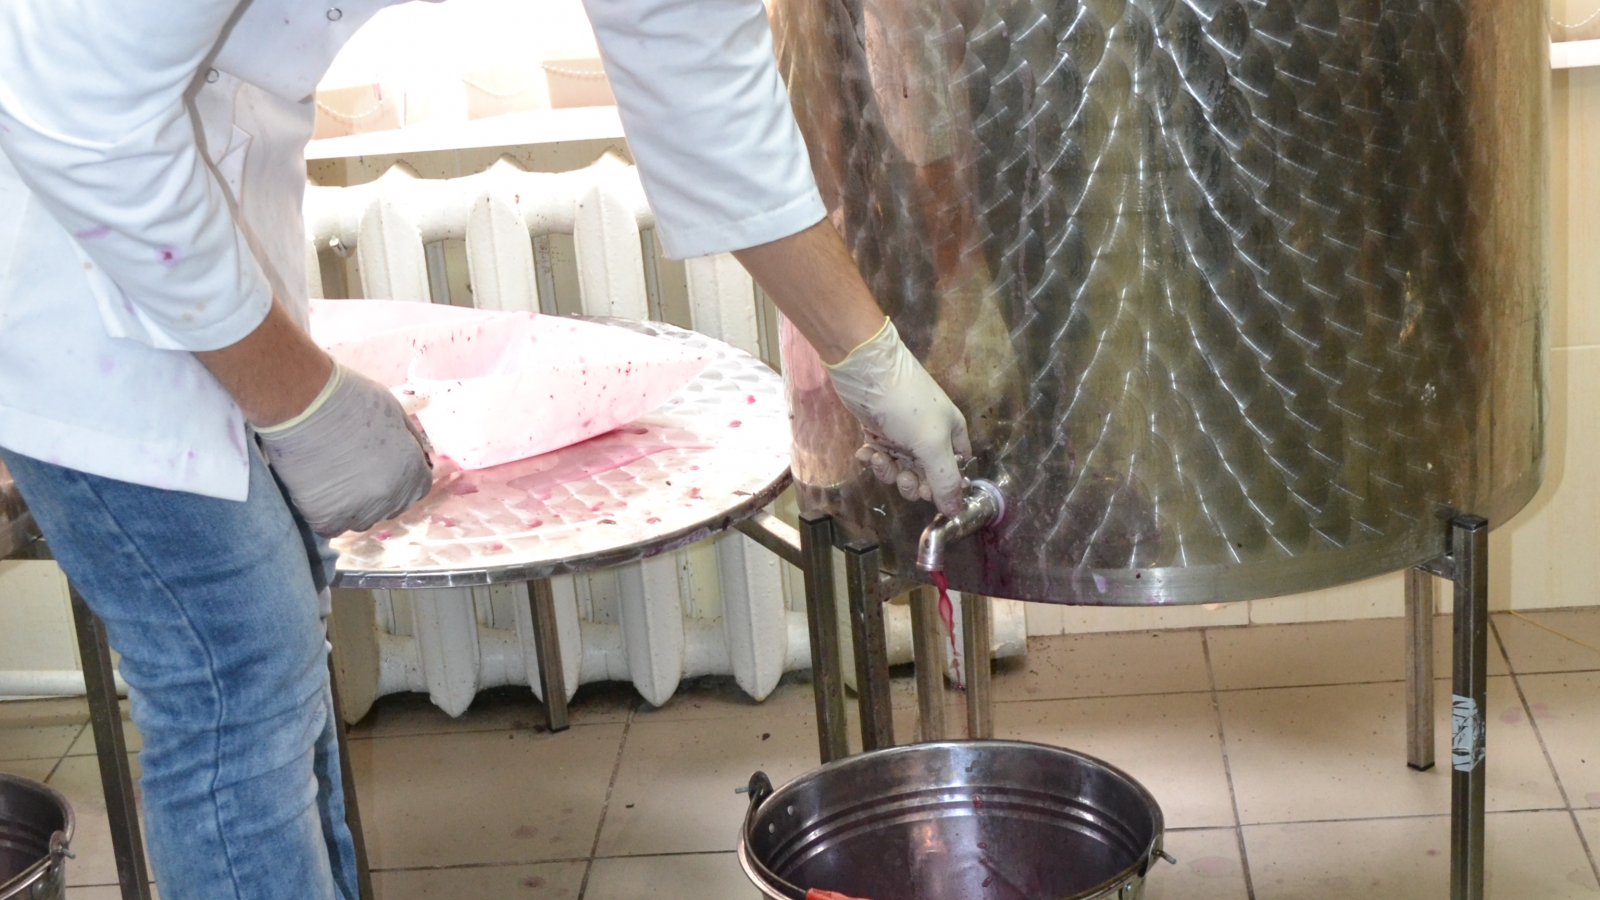 The Oenology Department and Micro Winemaking Unit of the Technical University of Moldova